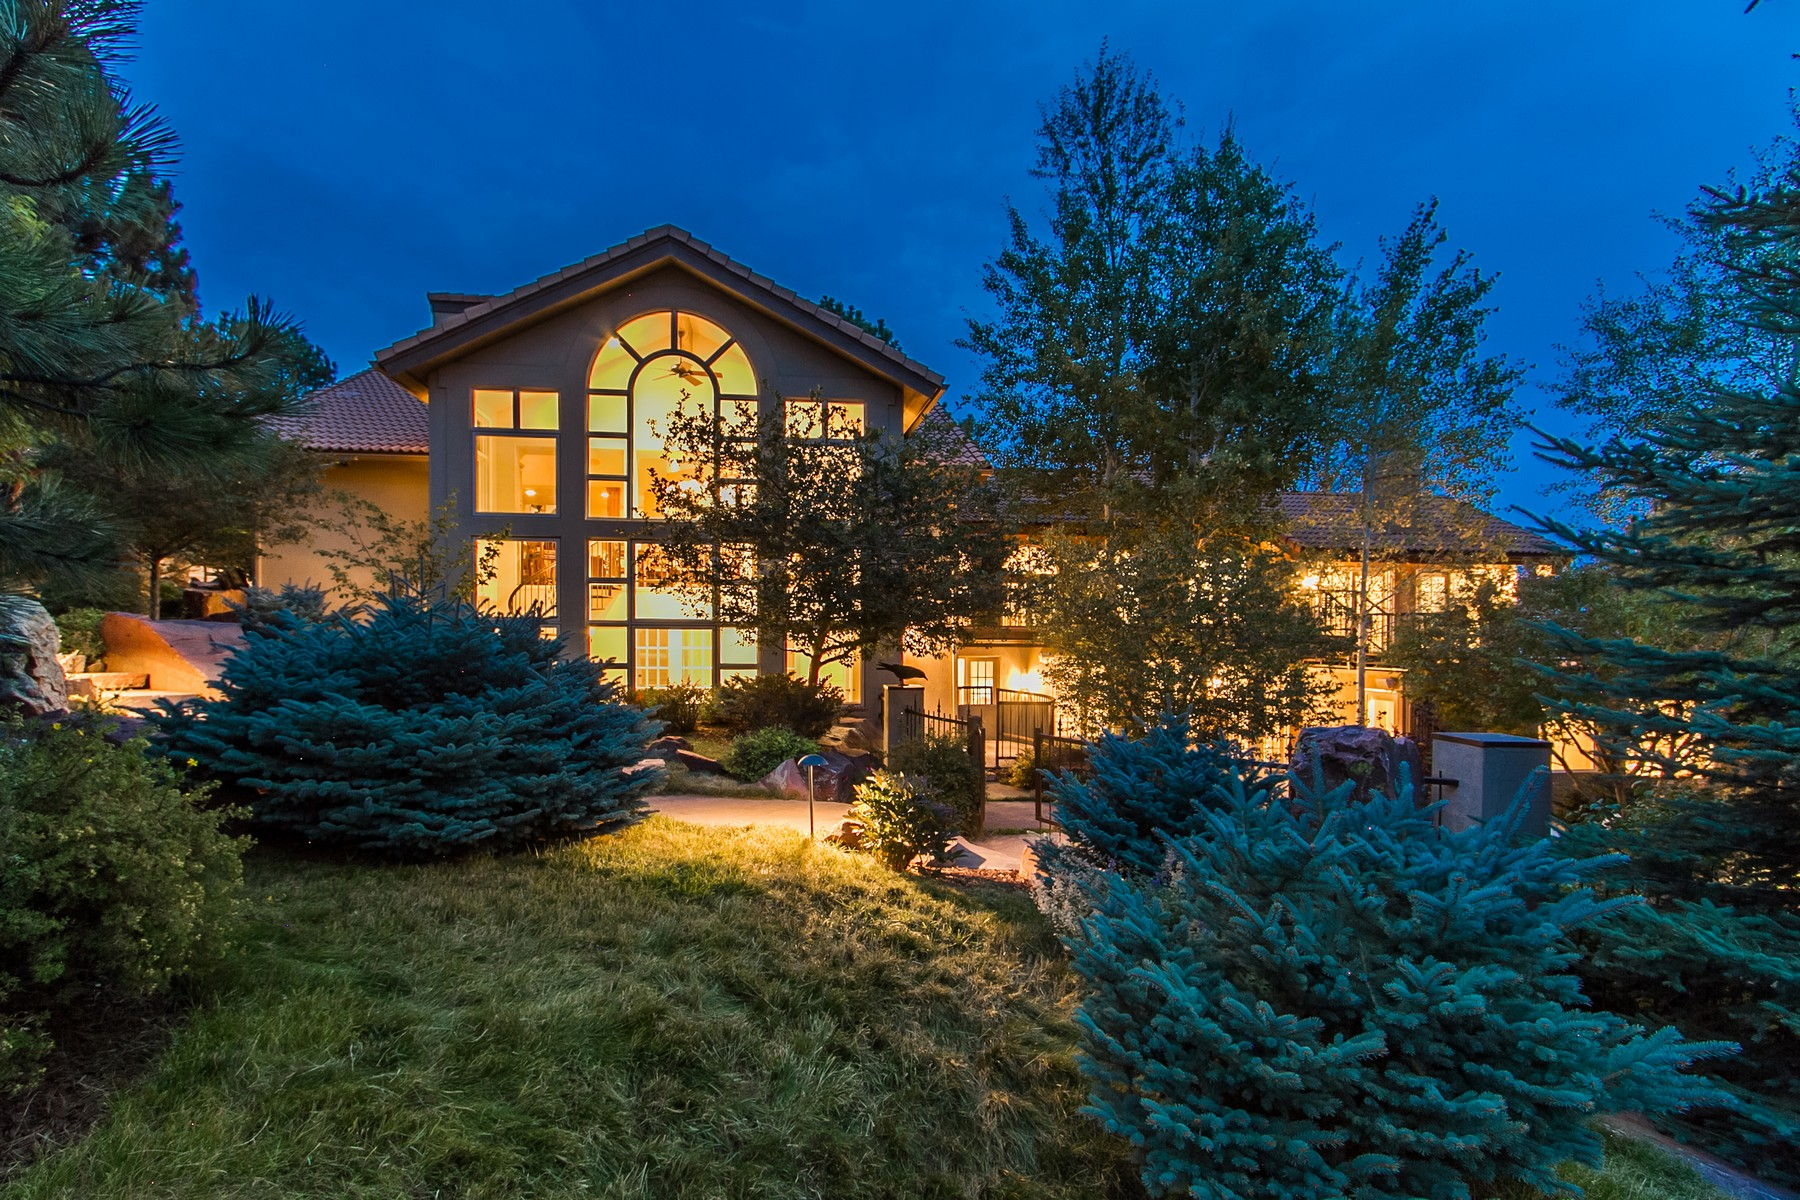 Single Family Home for Sale at Mountain Living in Style! 1952 Montane Drive East Golden, Colorado, 80401 United States